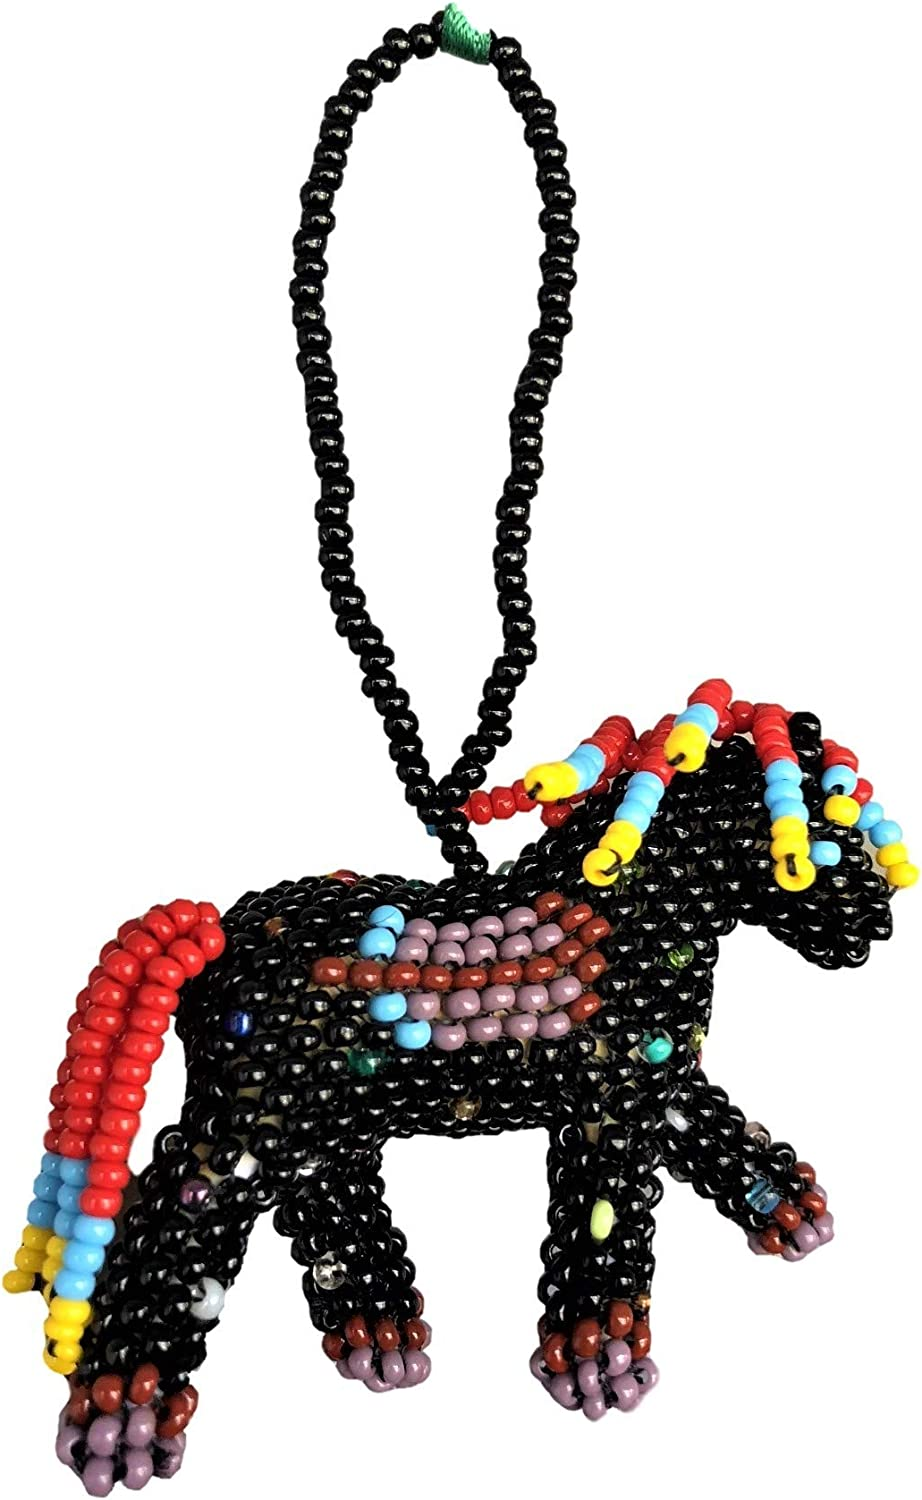 Mayan Arts Mini Beaded Horse, Red, Orange, Green, Black, and Brown Novelty Christmas Tree Ornaments, Holiday Decoration, Handmade in Guatemala 1.5 x 2 Inches